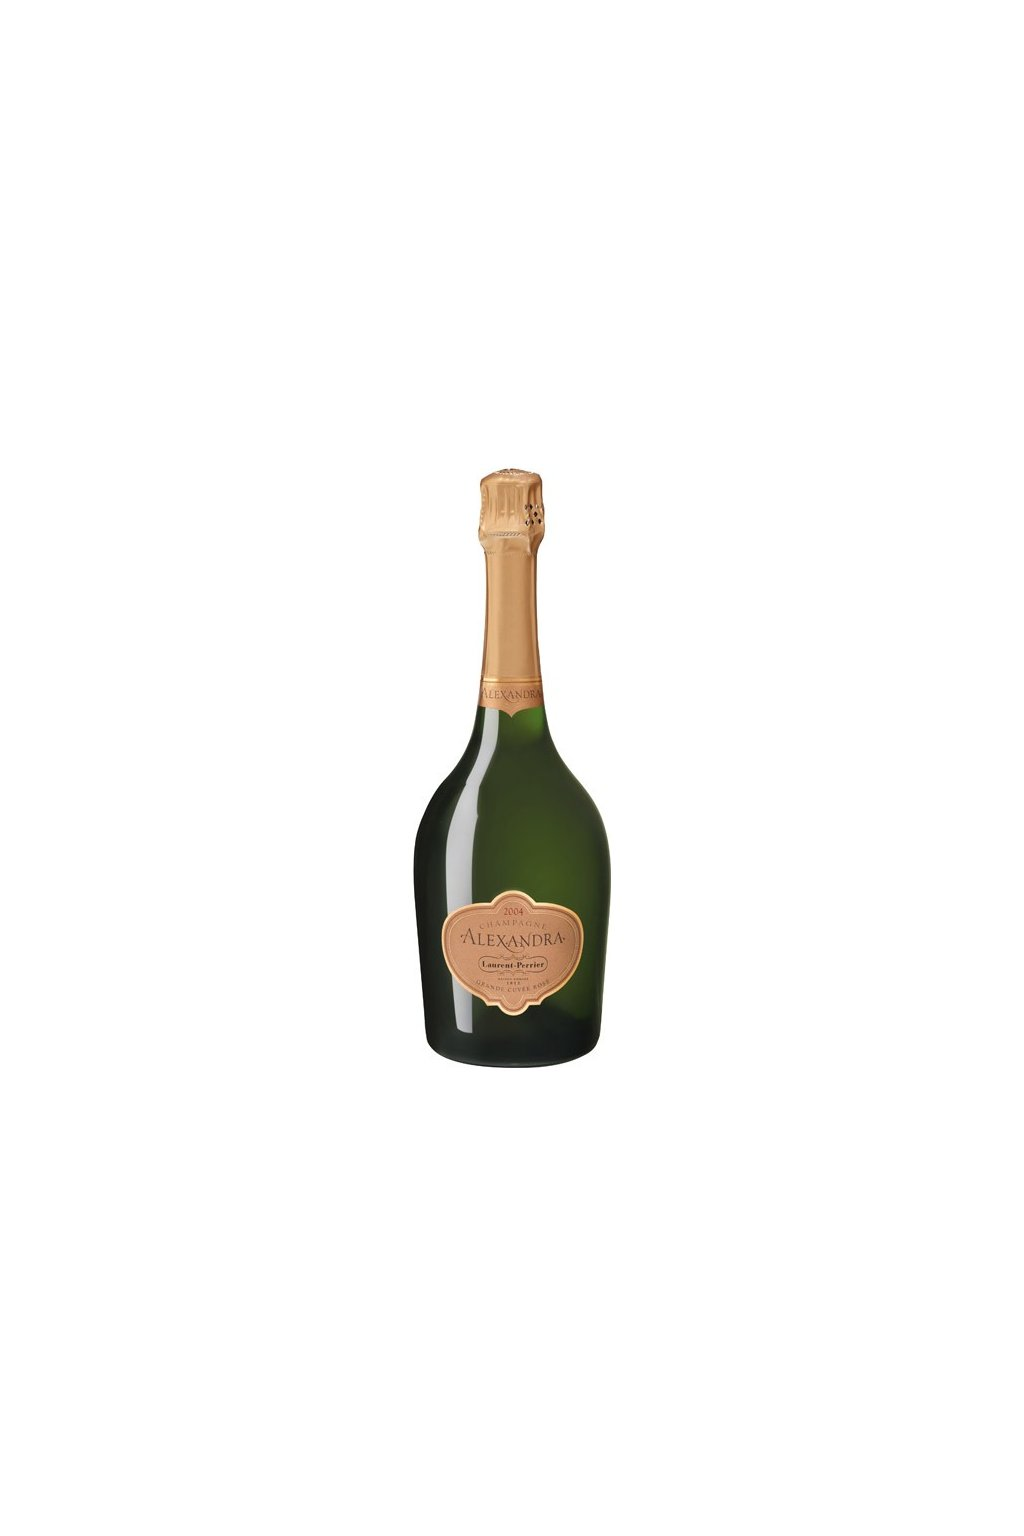 laurent perrier alexandra rose 2001